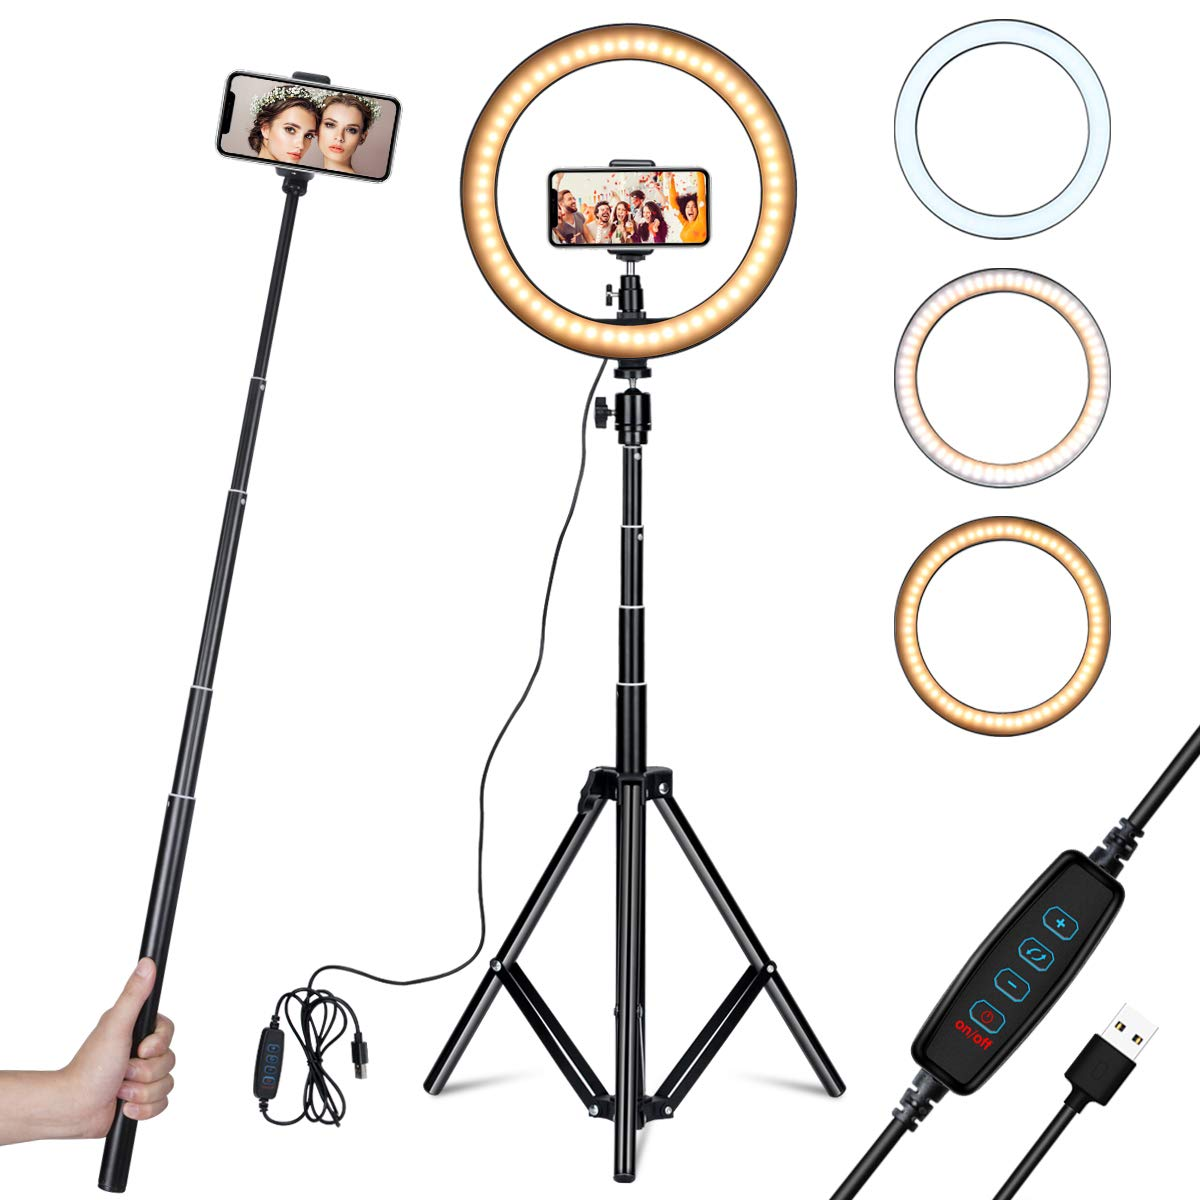 Amconsure LED Ring Light,10'' Selfie Ring Light with Adjustable Tripod Stand & Phone Holder for Live Stream/Makeup/YouTube Video/Photography Compatible iPhone Android by Amconsure